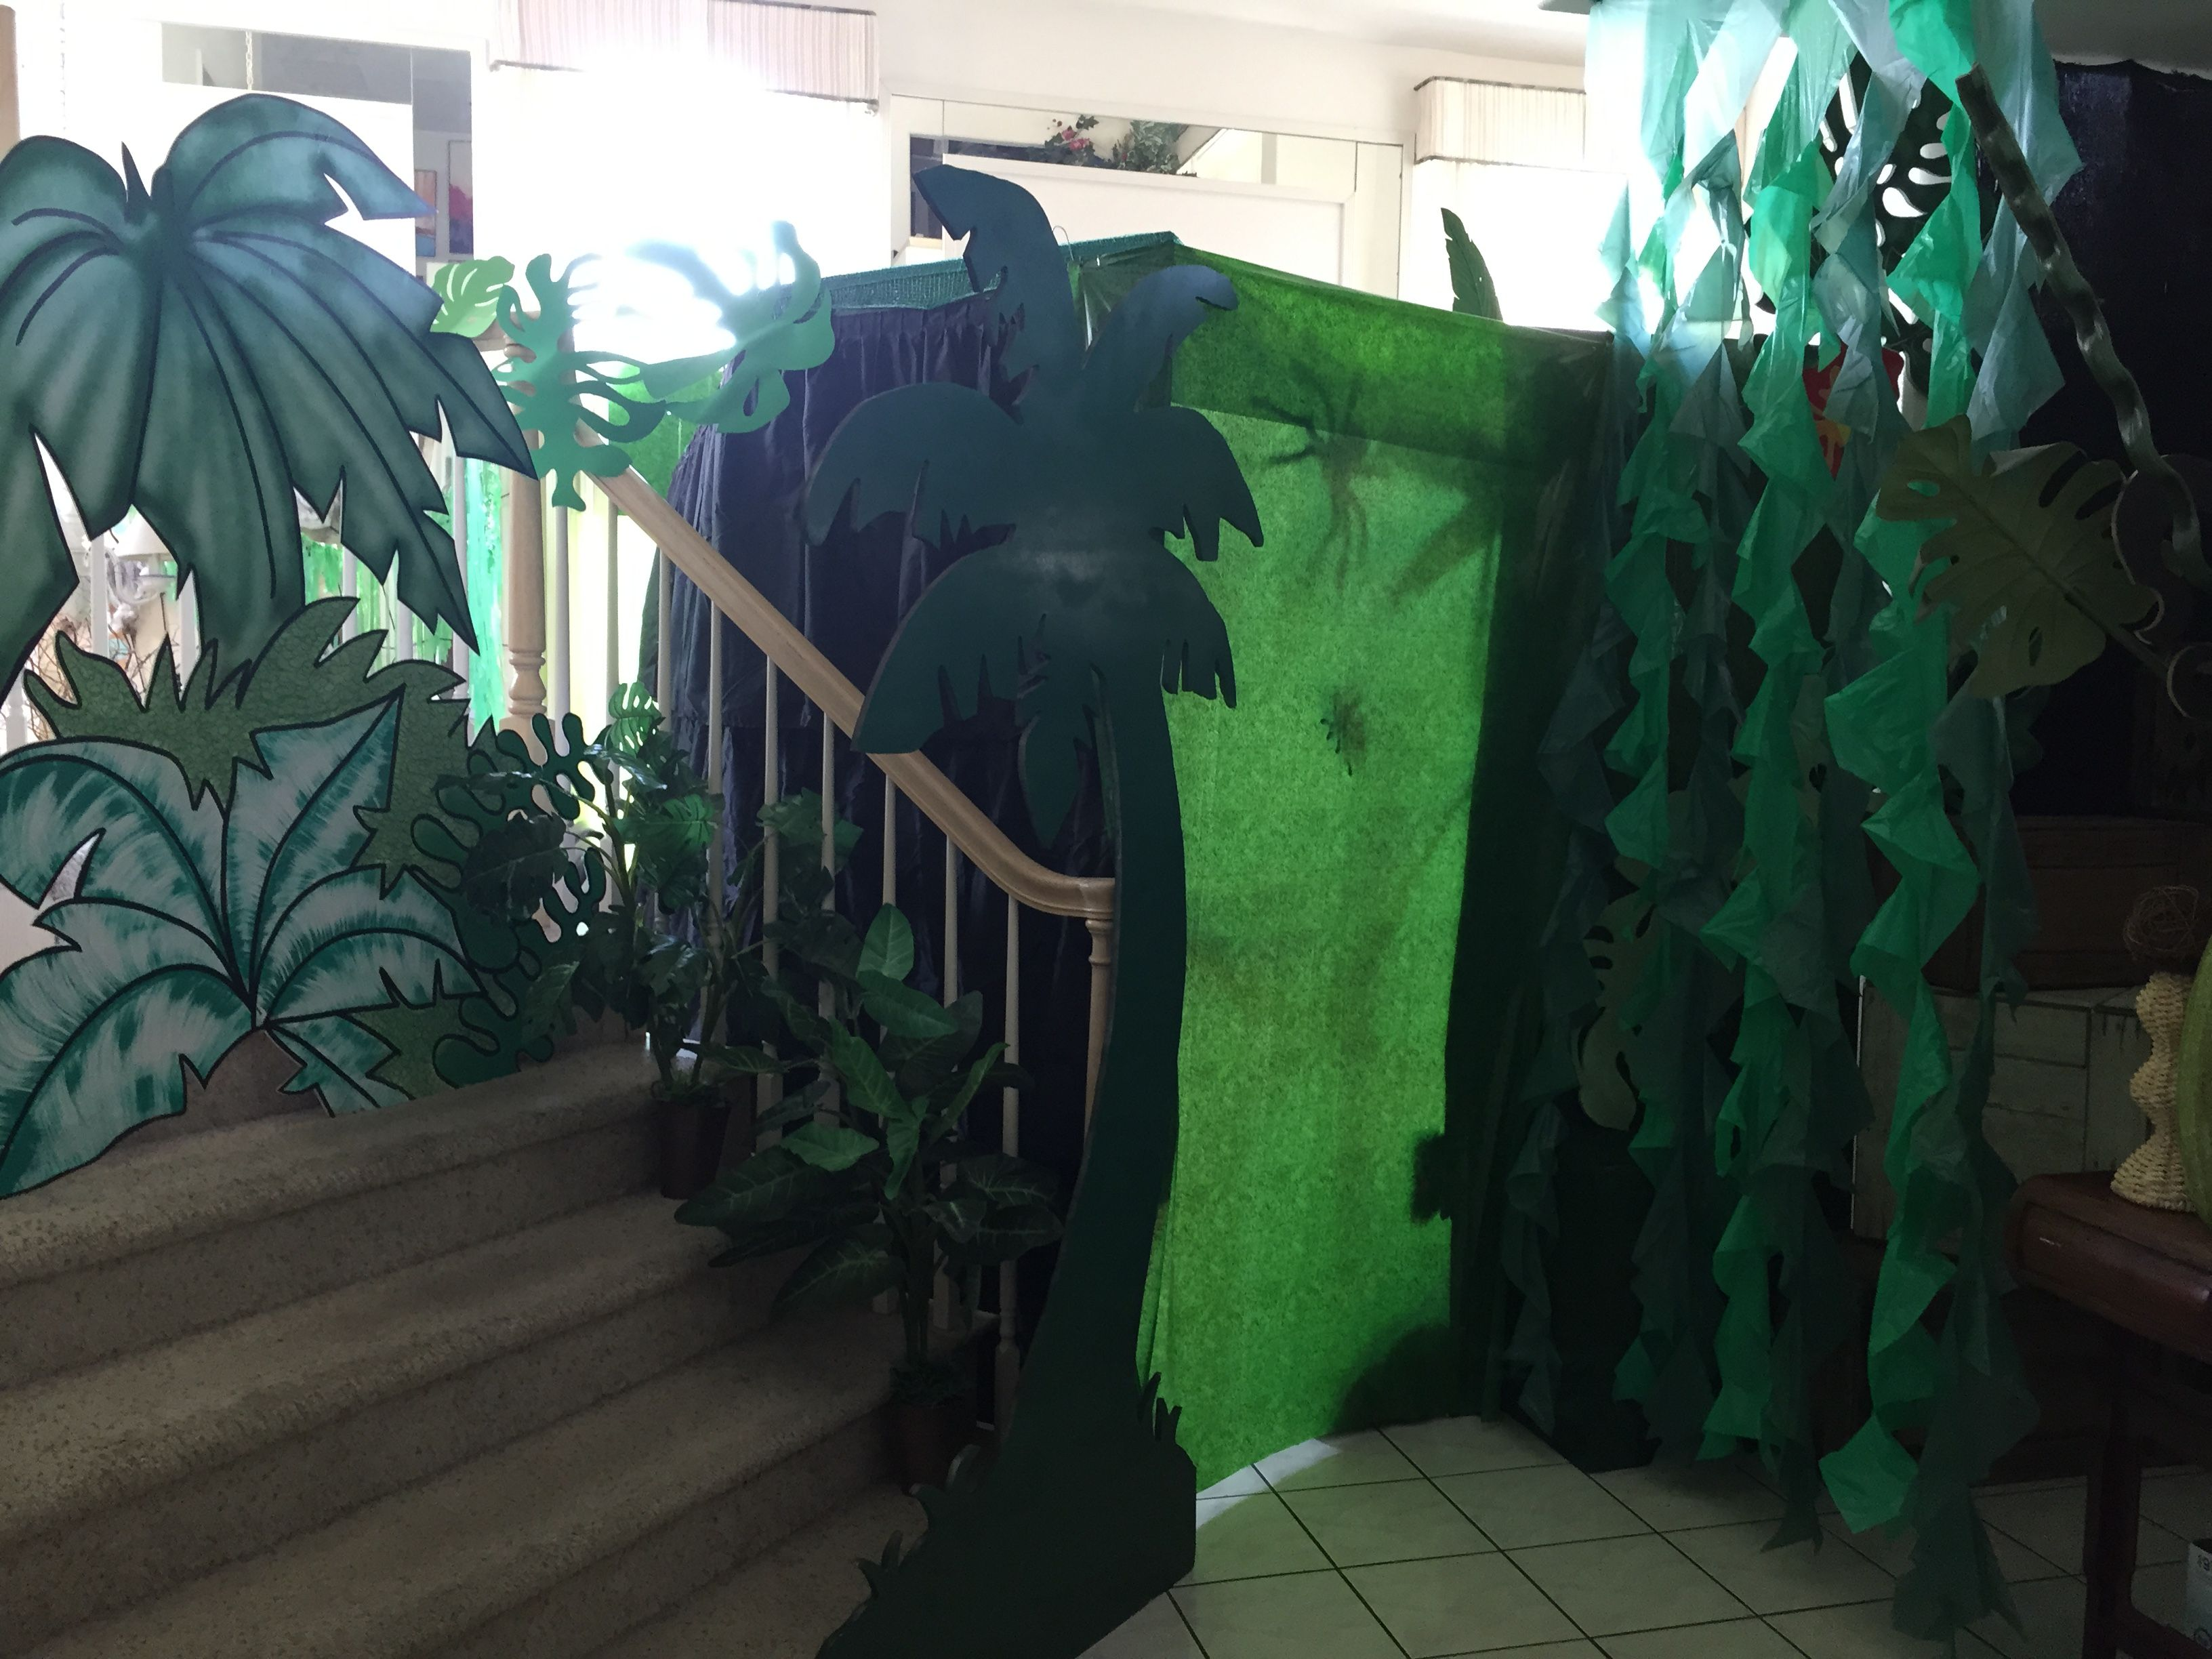 year i redid room classroom entire decor themed dsc jungle my this warriors welp little